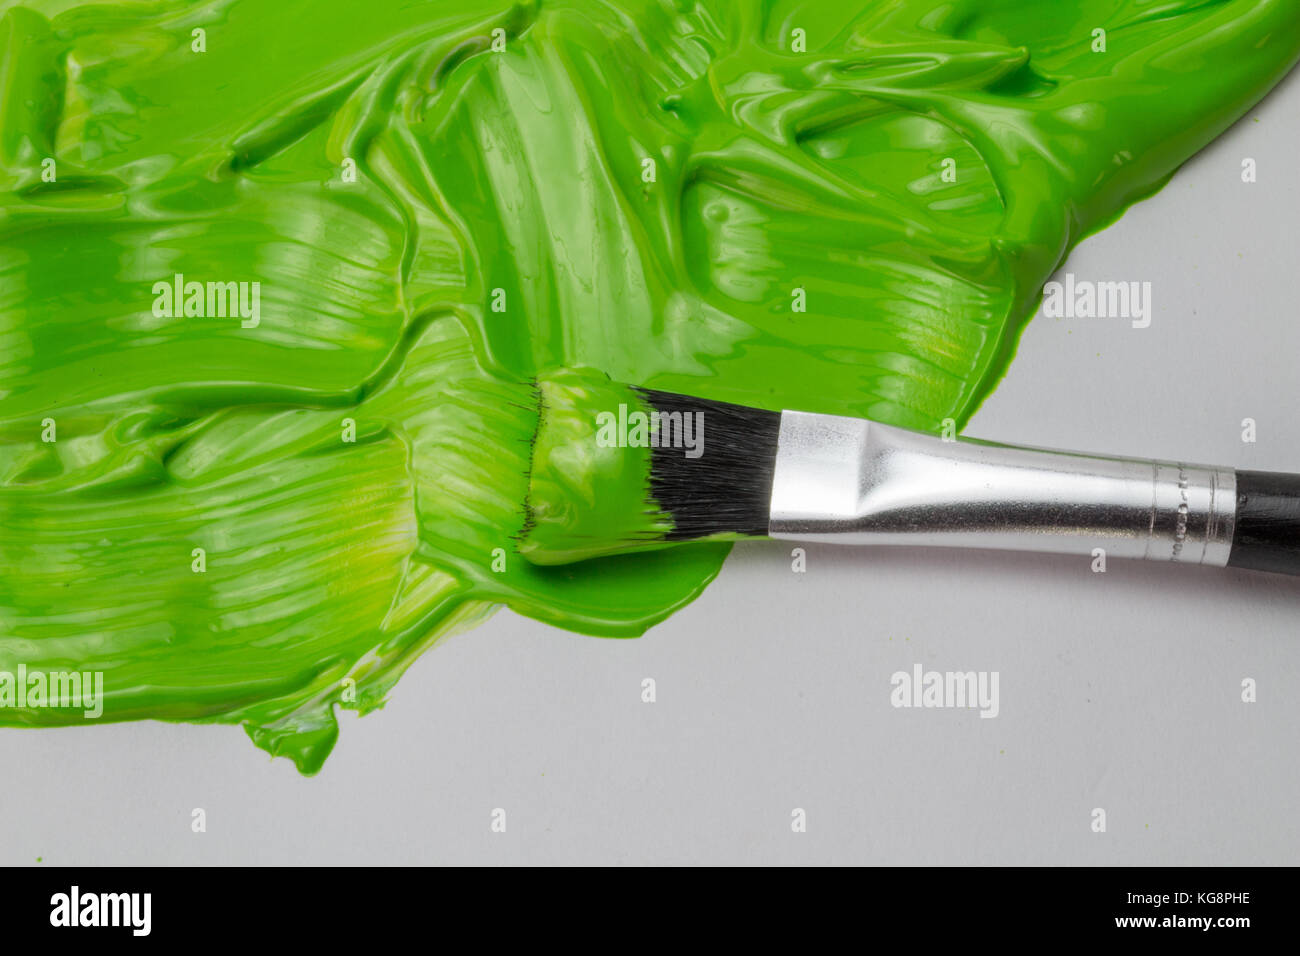 Green Paint And Art Brush With Thick Glossy Strokes On White